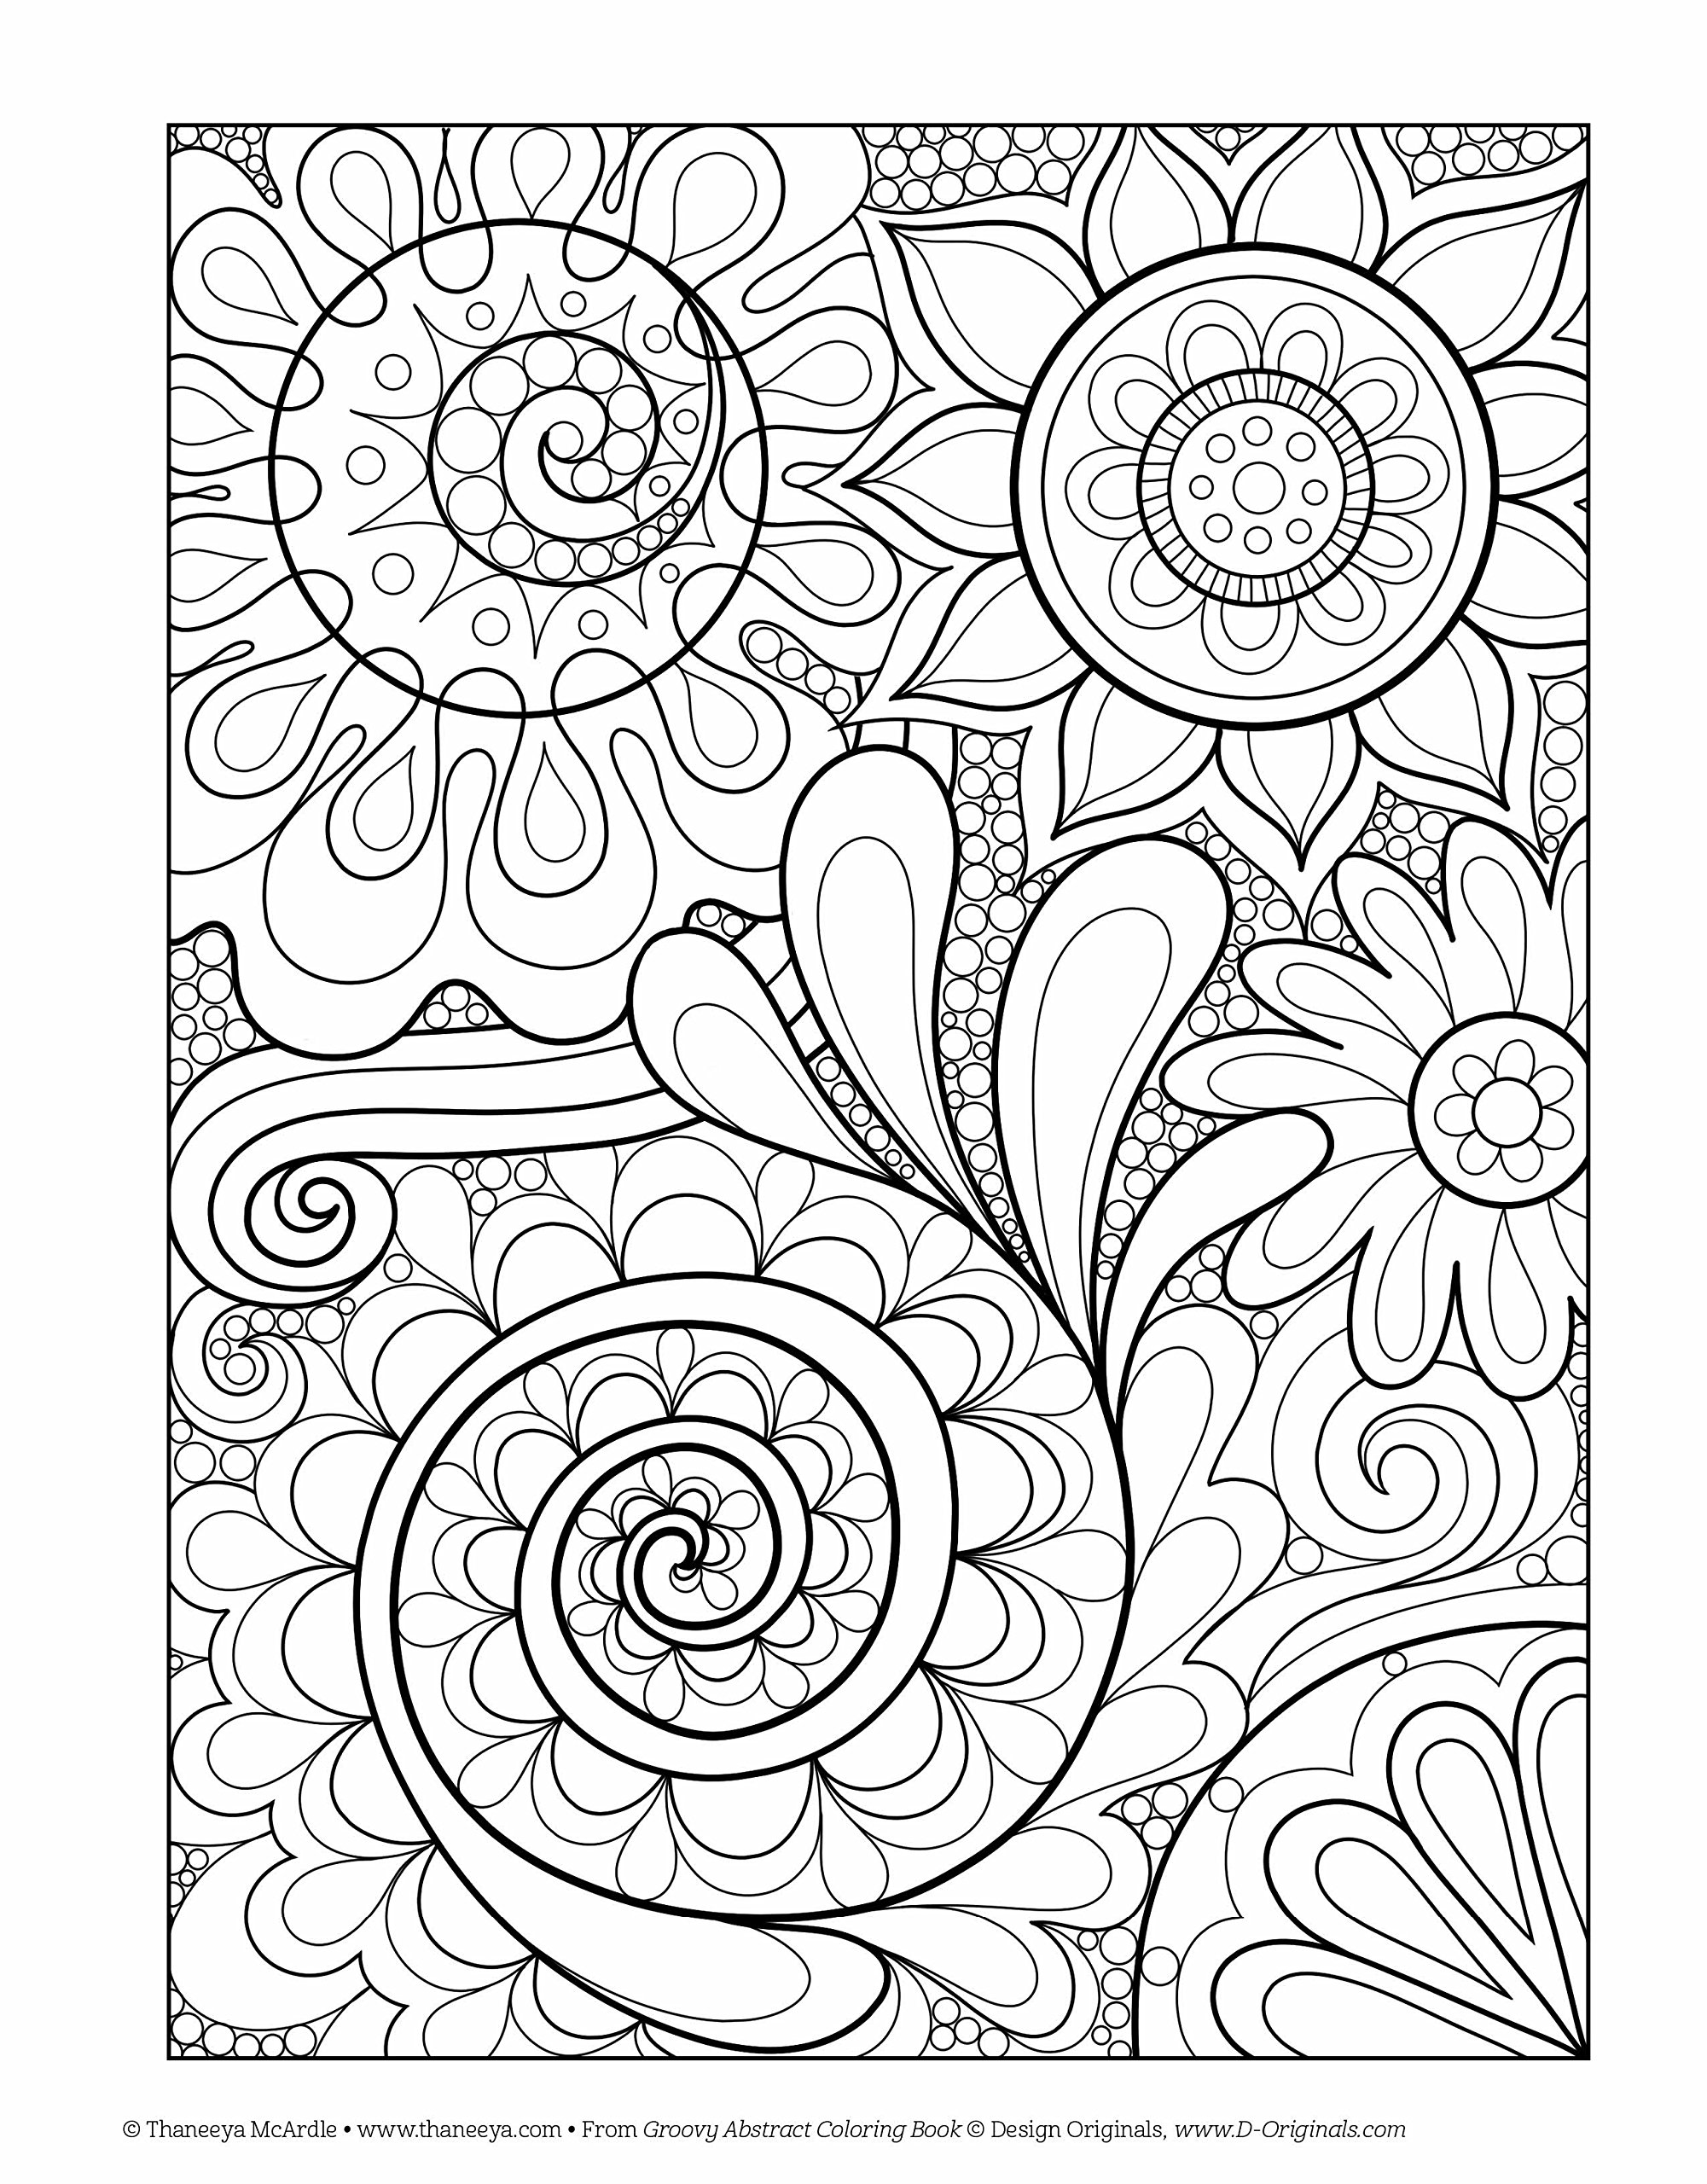 Groovy Abstract Coloring Book Design Originals Is Fun Thaneeya McArdle 9781574219623 Amazon Books